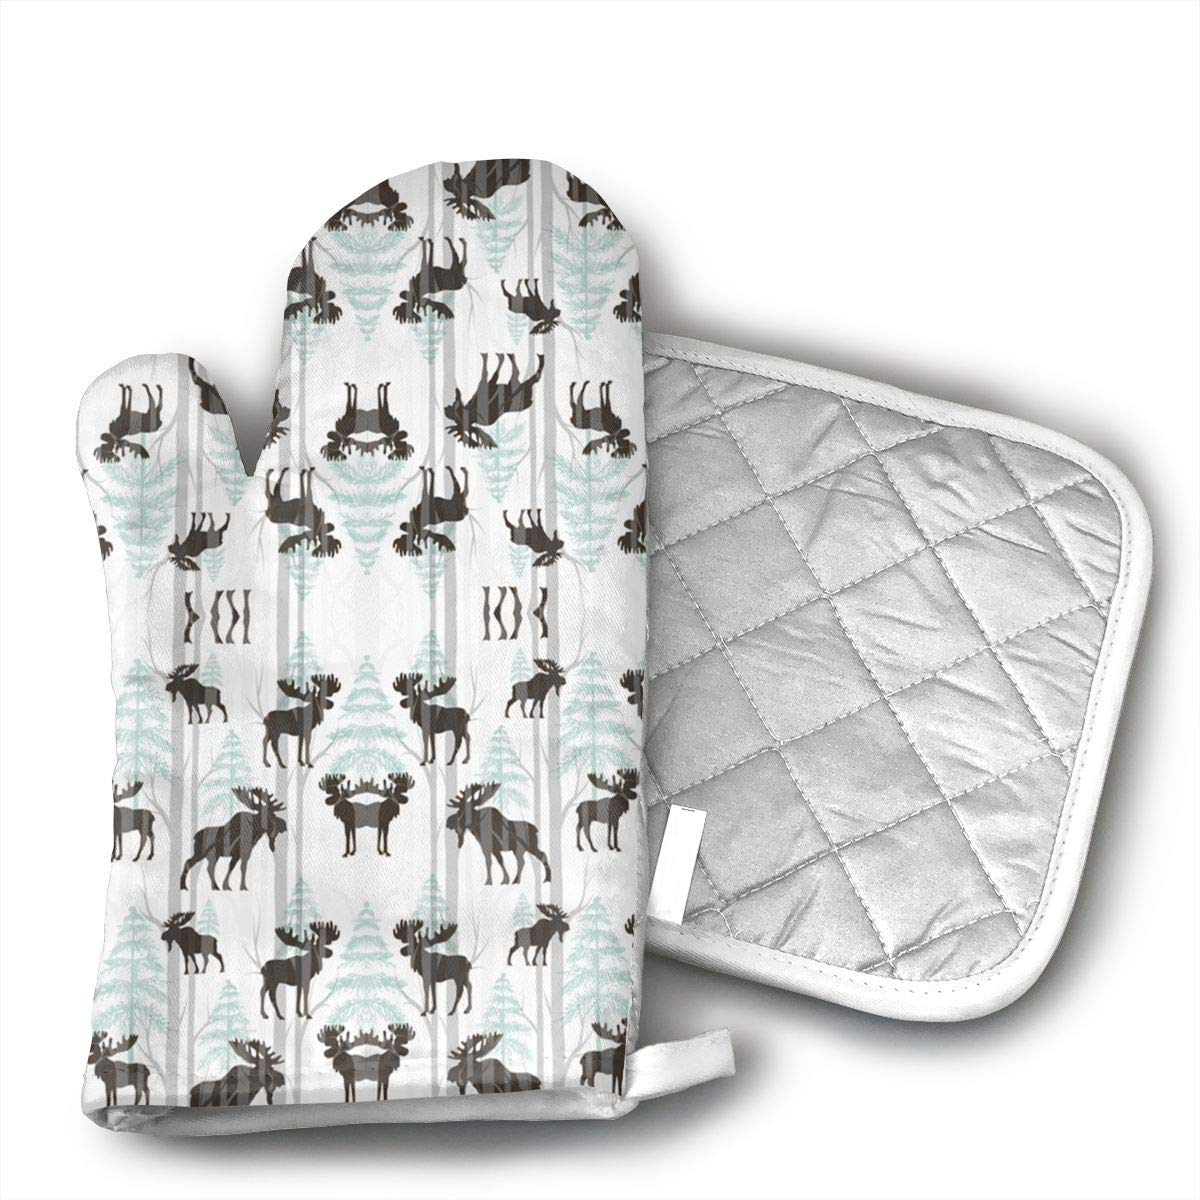 InsulatedMitt59 Moose Forest Oven Mitts, Non-Slip Silicone Oven Mitts, Extra Long Kitchen Mitts, Heat Resistant to 572¡ãF Kitchen Oven Gloves